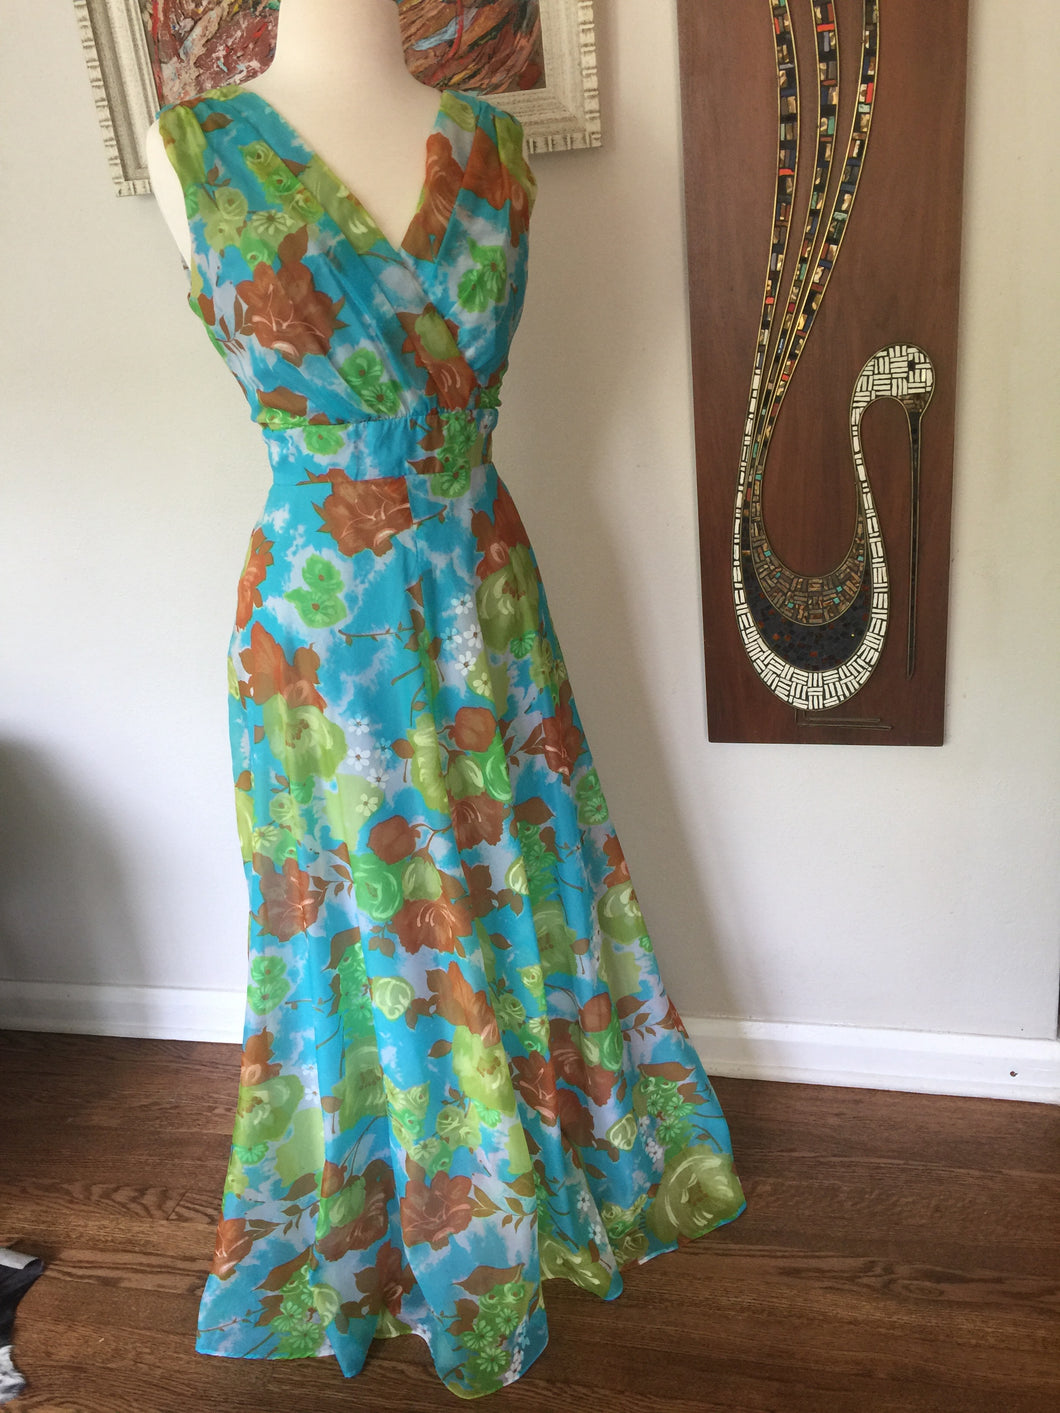 Vintage 1970s New Old Stock Sleeveless Floral Maxi Dress With Large Blue And Green Floral